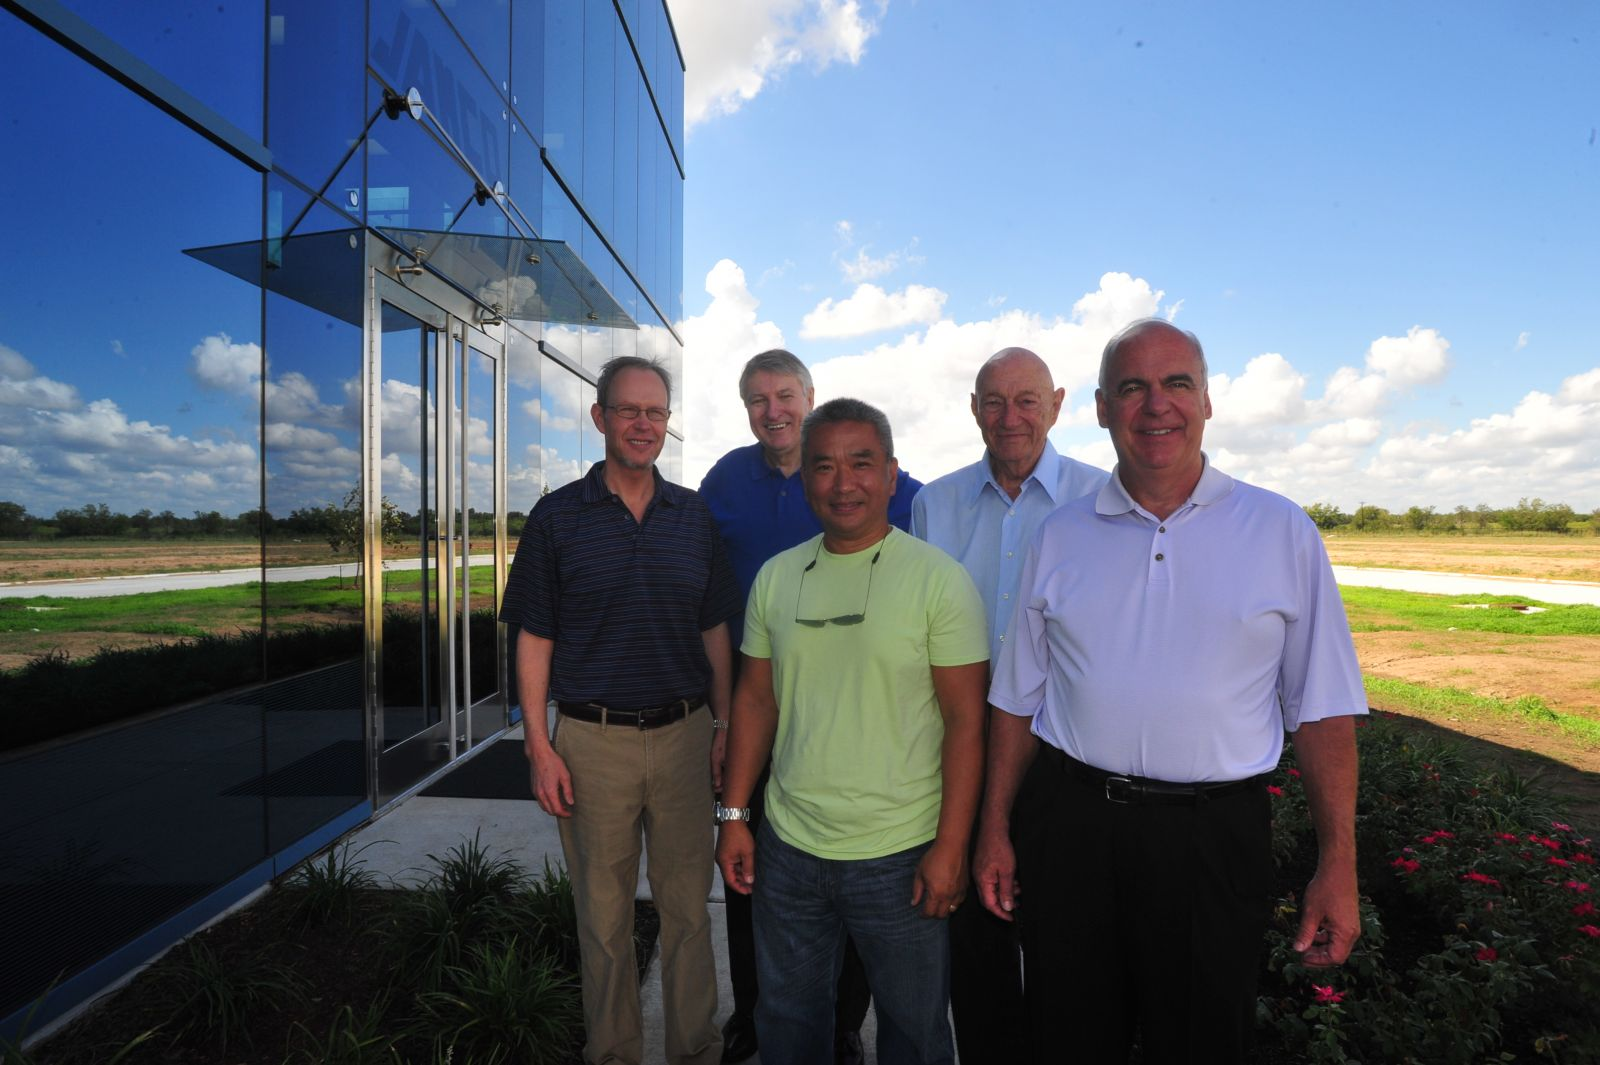 From left to right: Willie Johnson (owner), Phil Reames (CFO), Van Nguyen (Exec VP), George Johnson Sr. (owner), and Phil Greeves (Pres and CEO). (Photo by Terry Hagerty Photography)